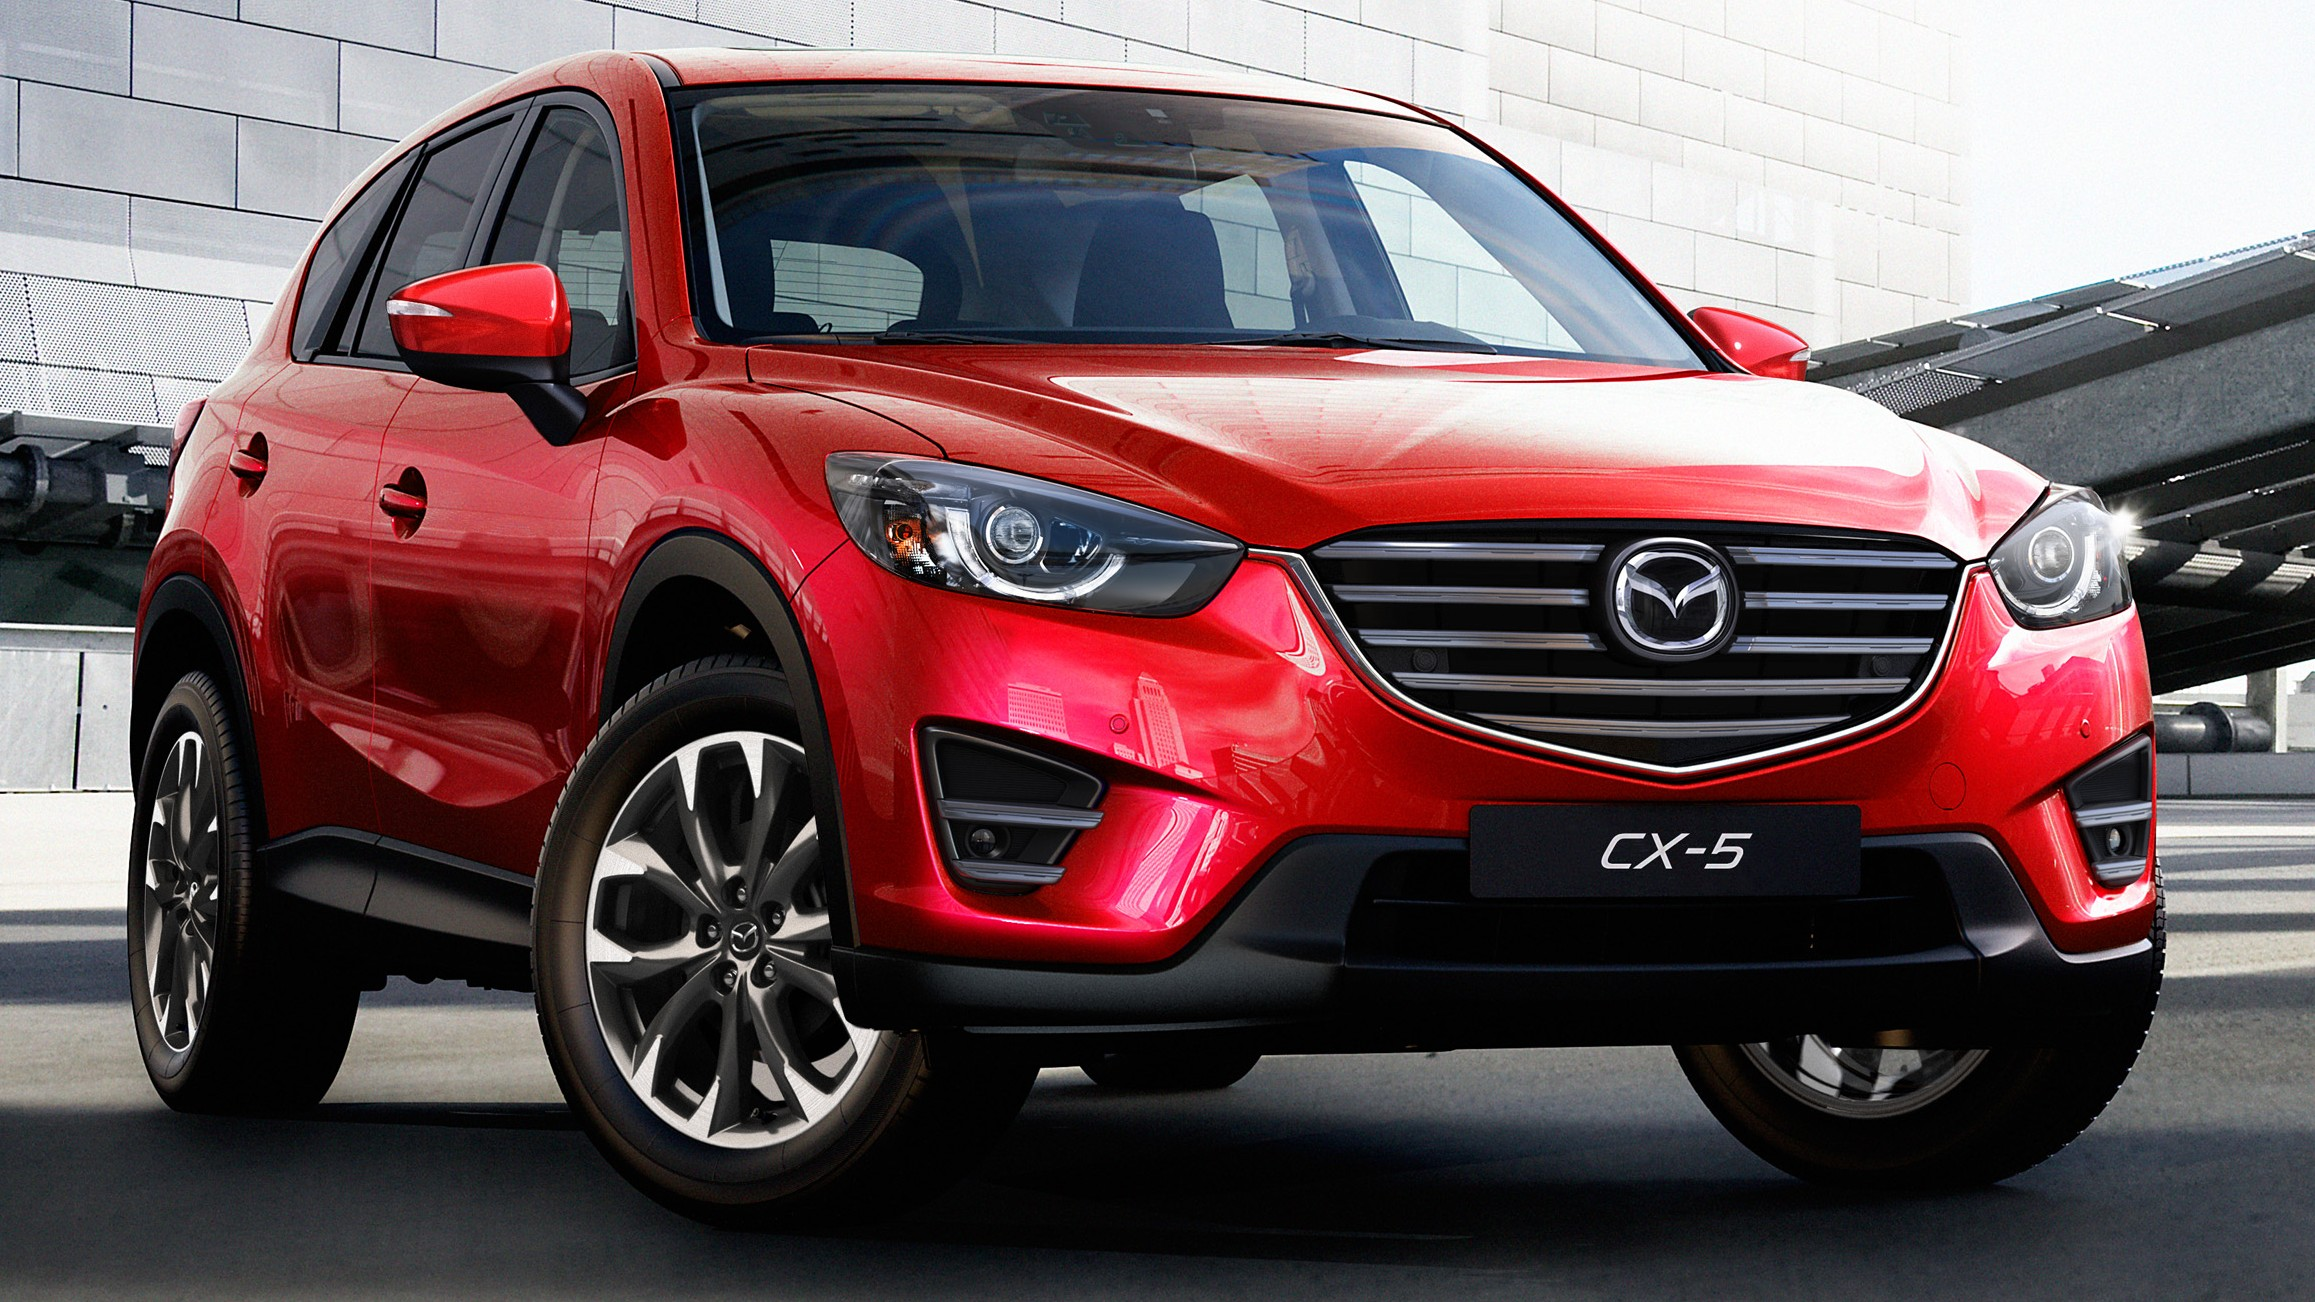 Back to Story: Mazda CX-5 facelift appears at LA with minor upgrades: paultan.org/2014/11/20/mazda-cx-5-facelift-official/2015-cx-5_2014...